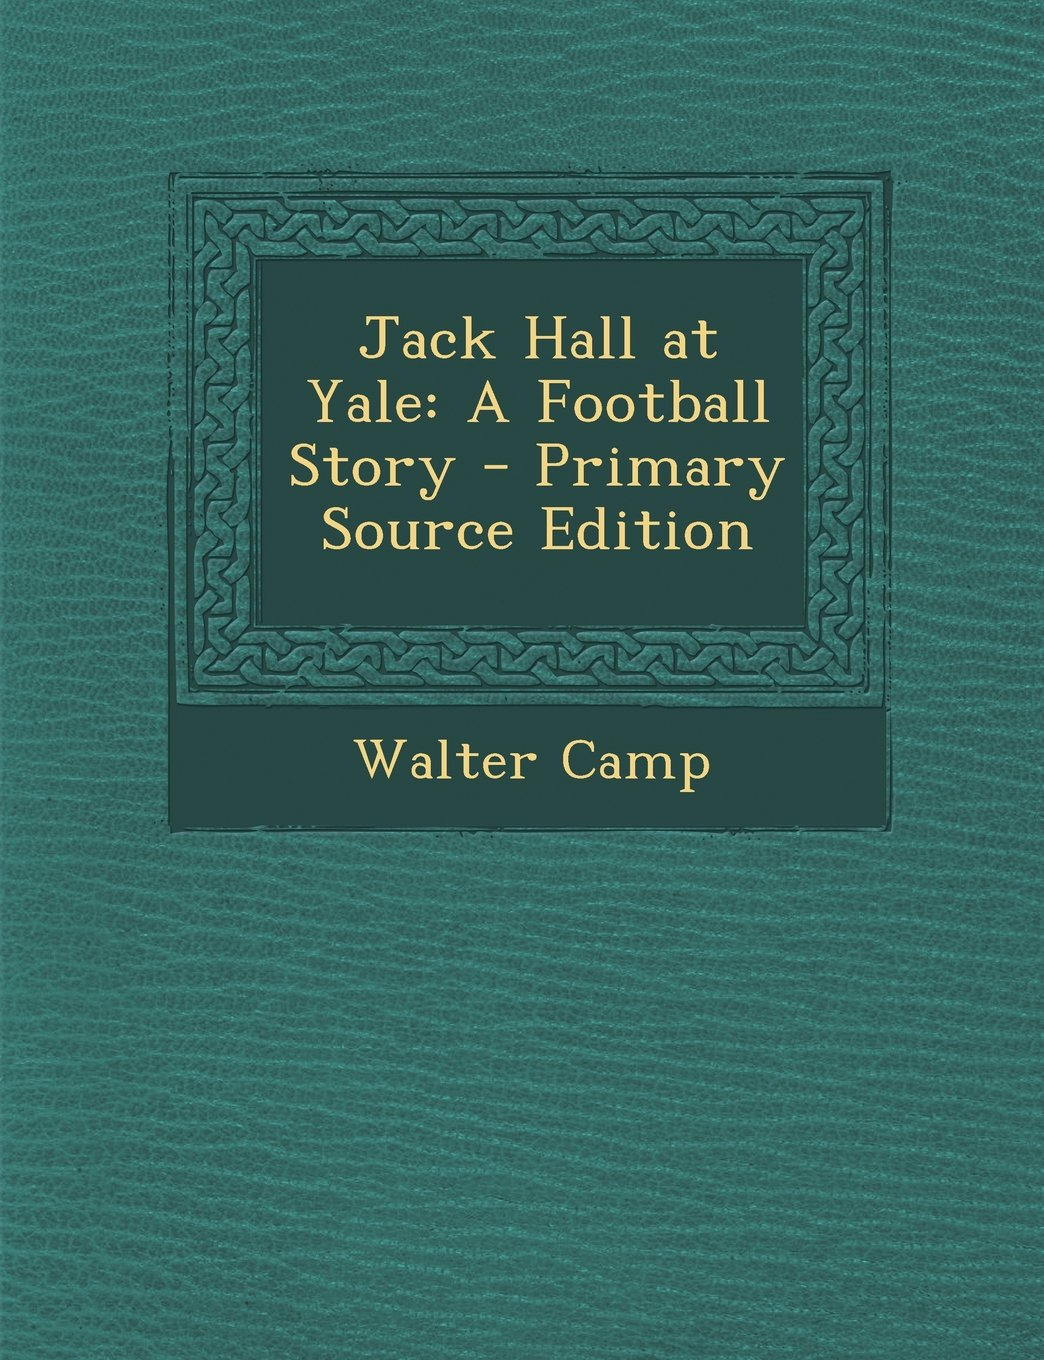 Jack Hall at Yale: A Football Story - Primary Source Edition pdf epub